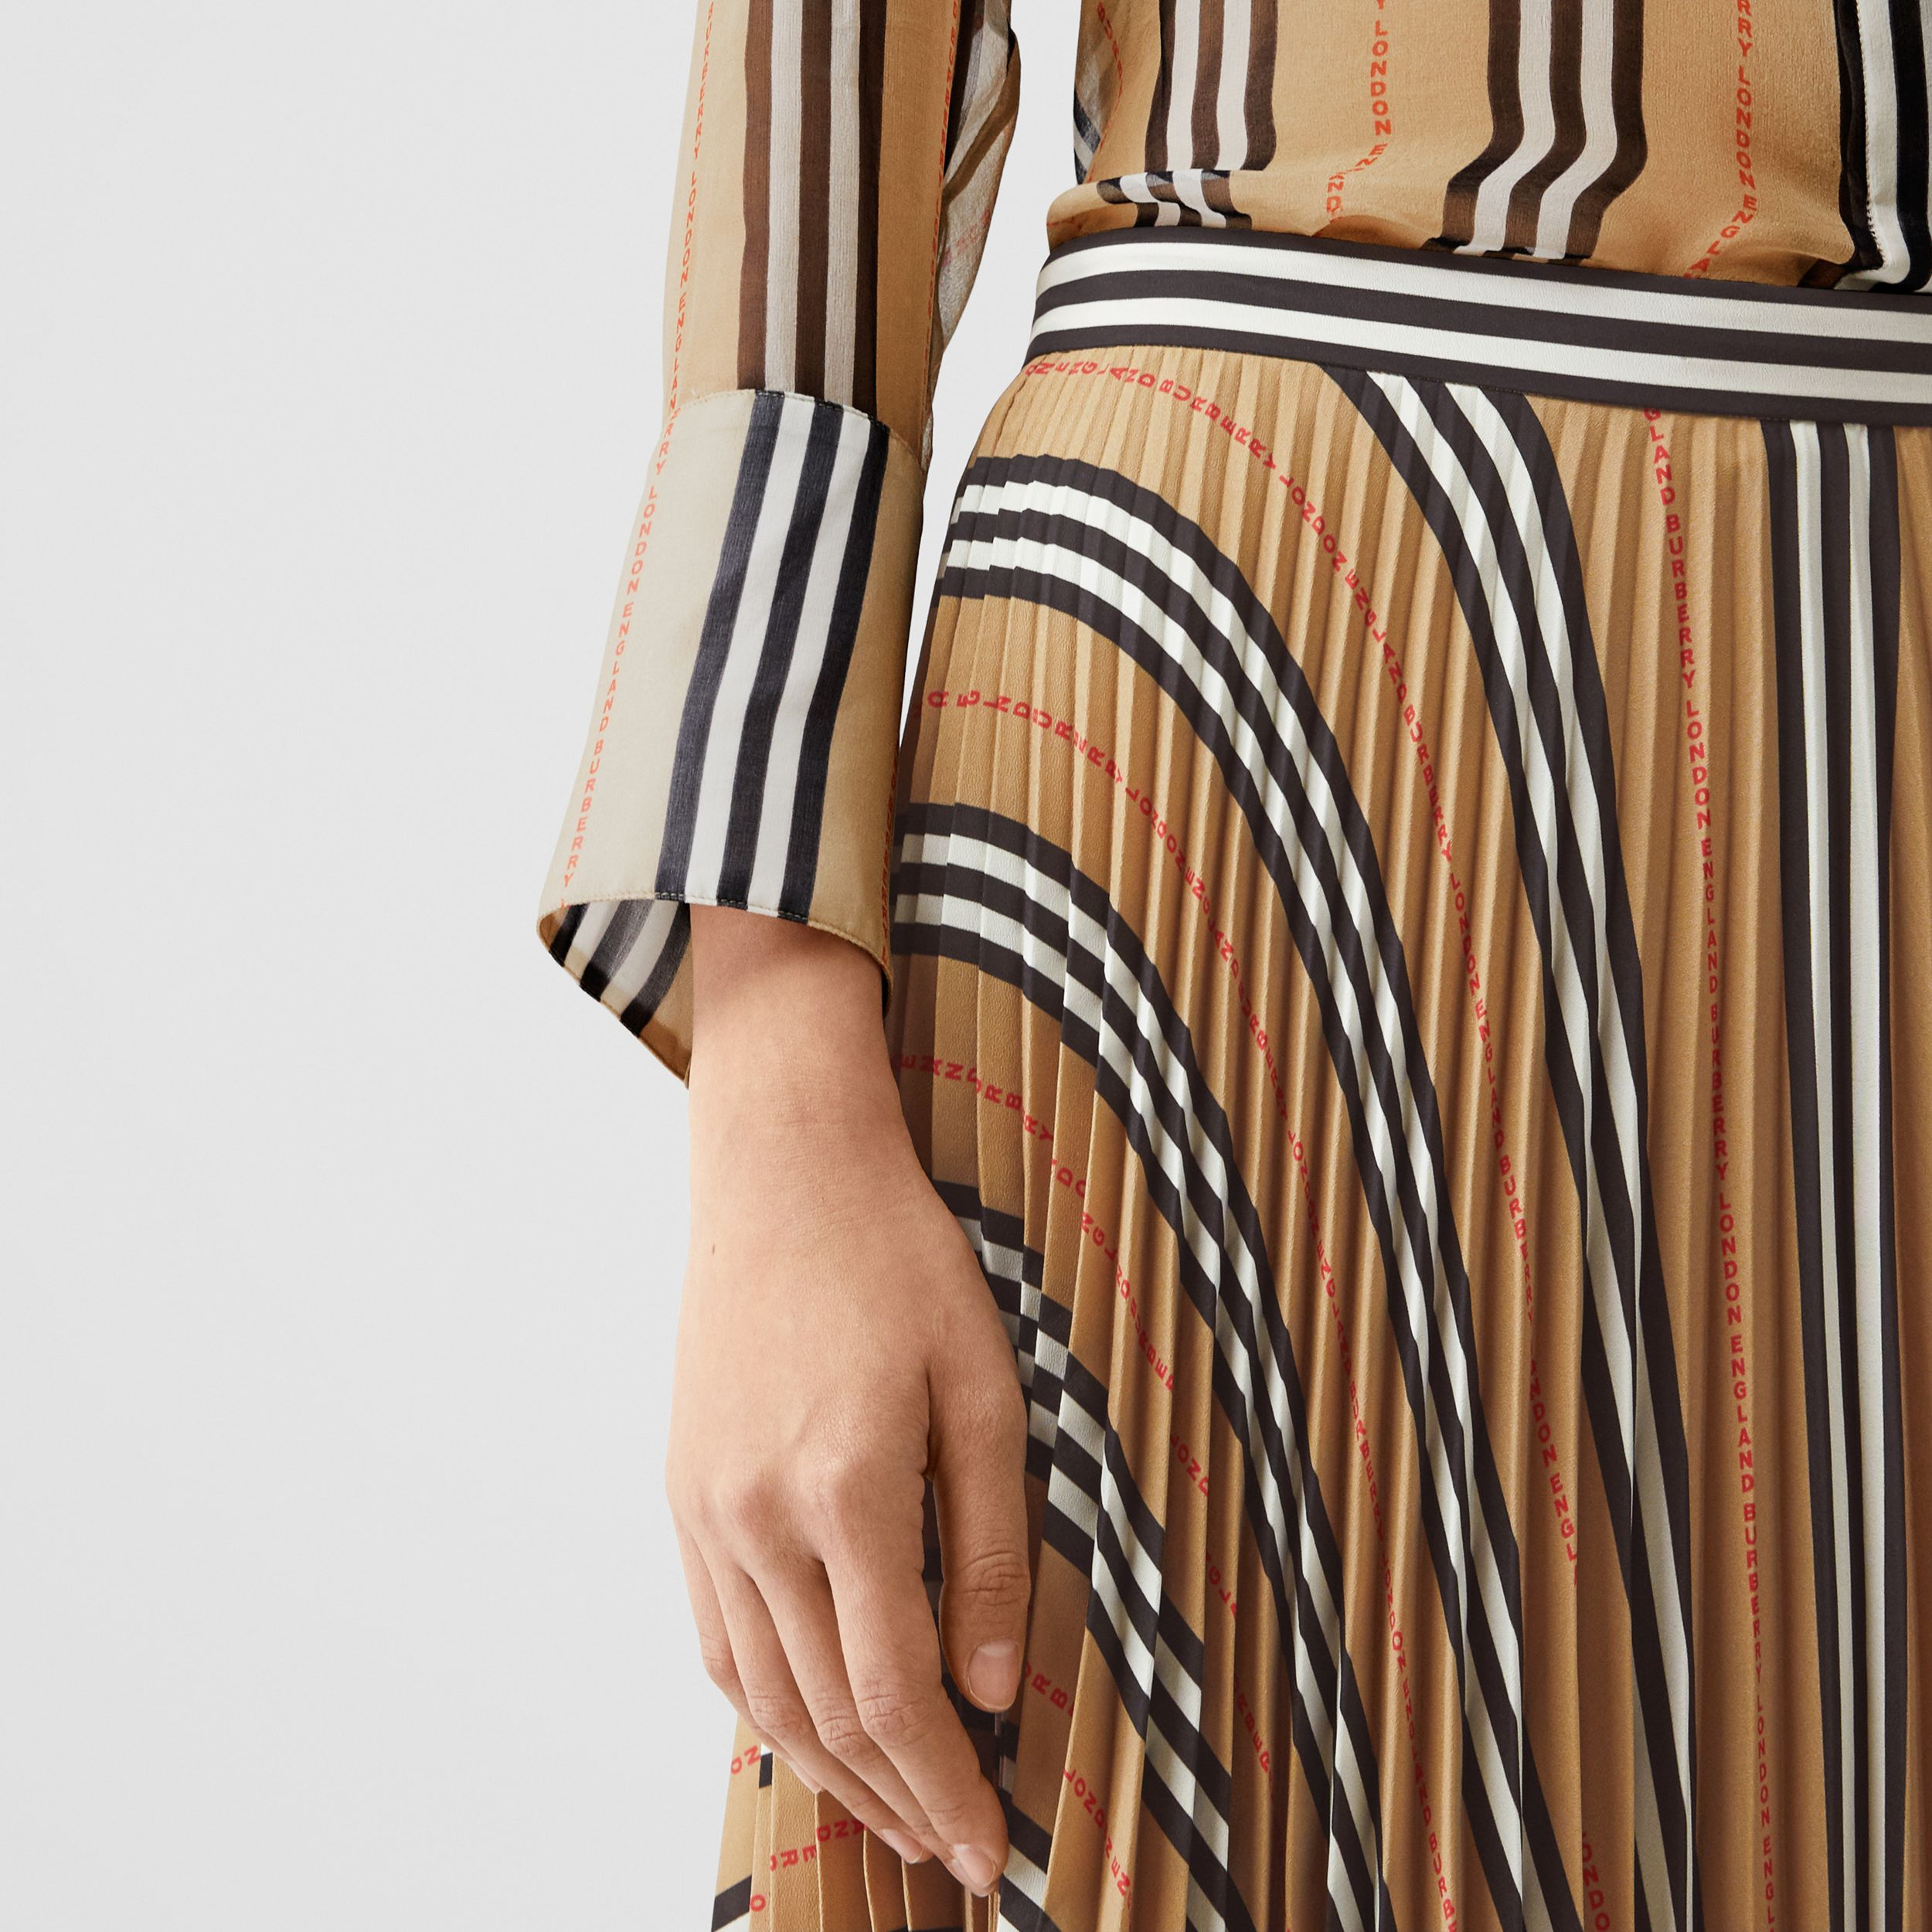 Logo and Stripe Print Crepe Pleated Skirt in Archive Beige - Women | Burberry United States - 2